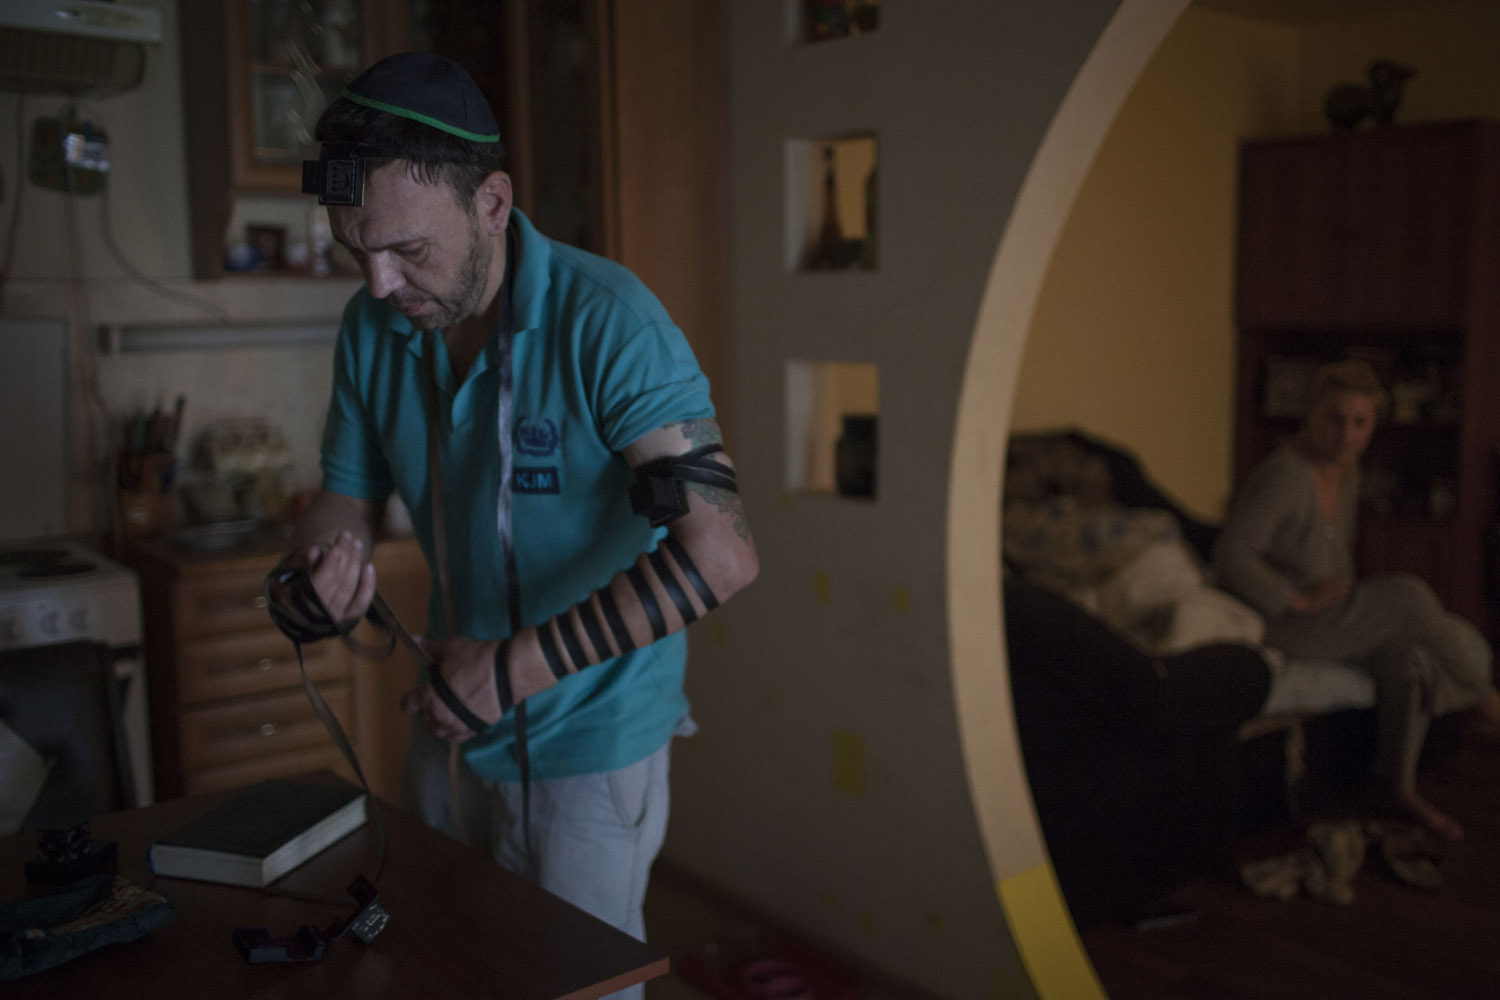 Shimon putting on tefillin for his morning prayers while his Christian wife wakes up from bed. His mother told him he was Jewish only after he grew up, so he did not get any Jewish education, but he's trying his best to keep the traditions.